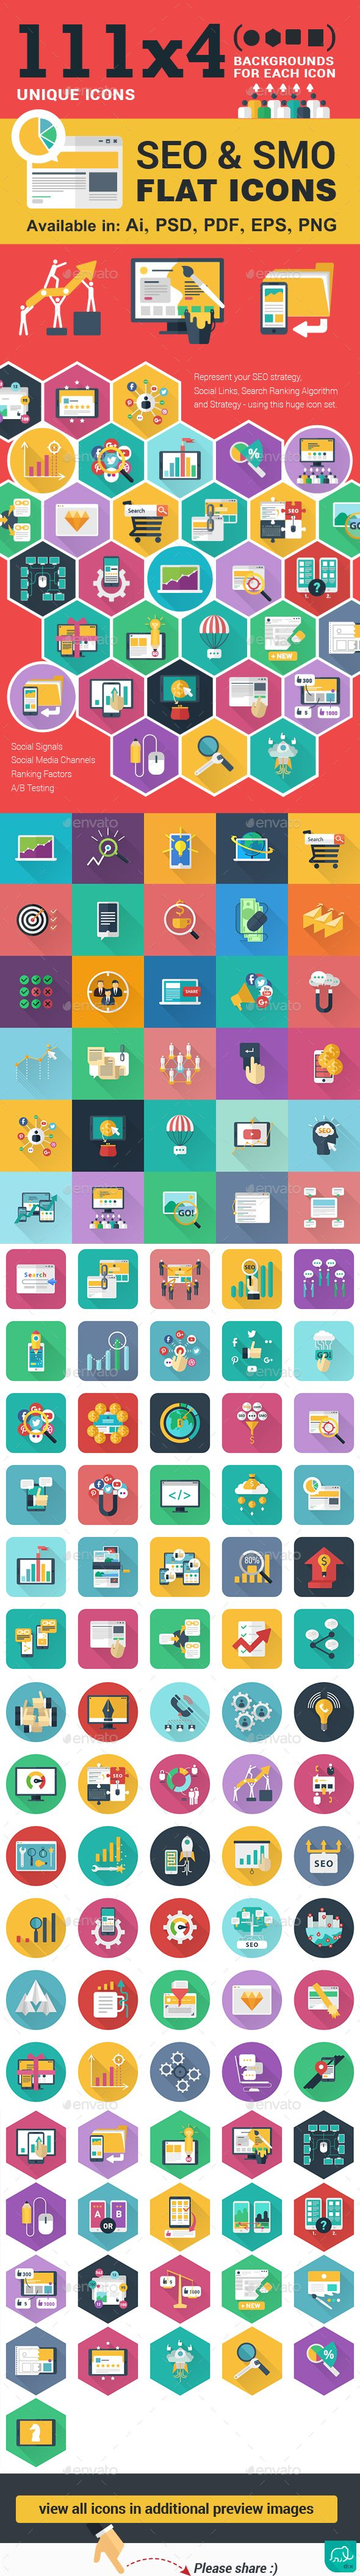 Pin by best Graphic Design on Icons Social media icons